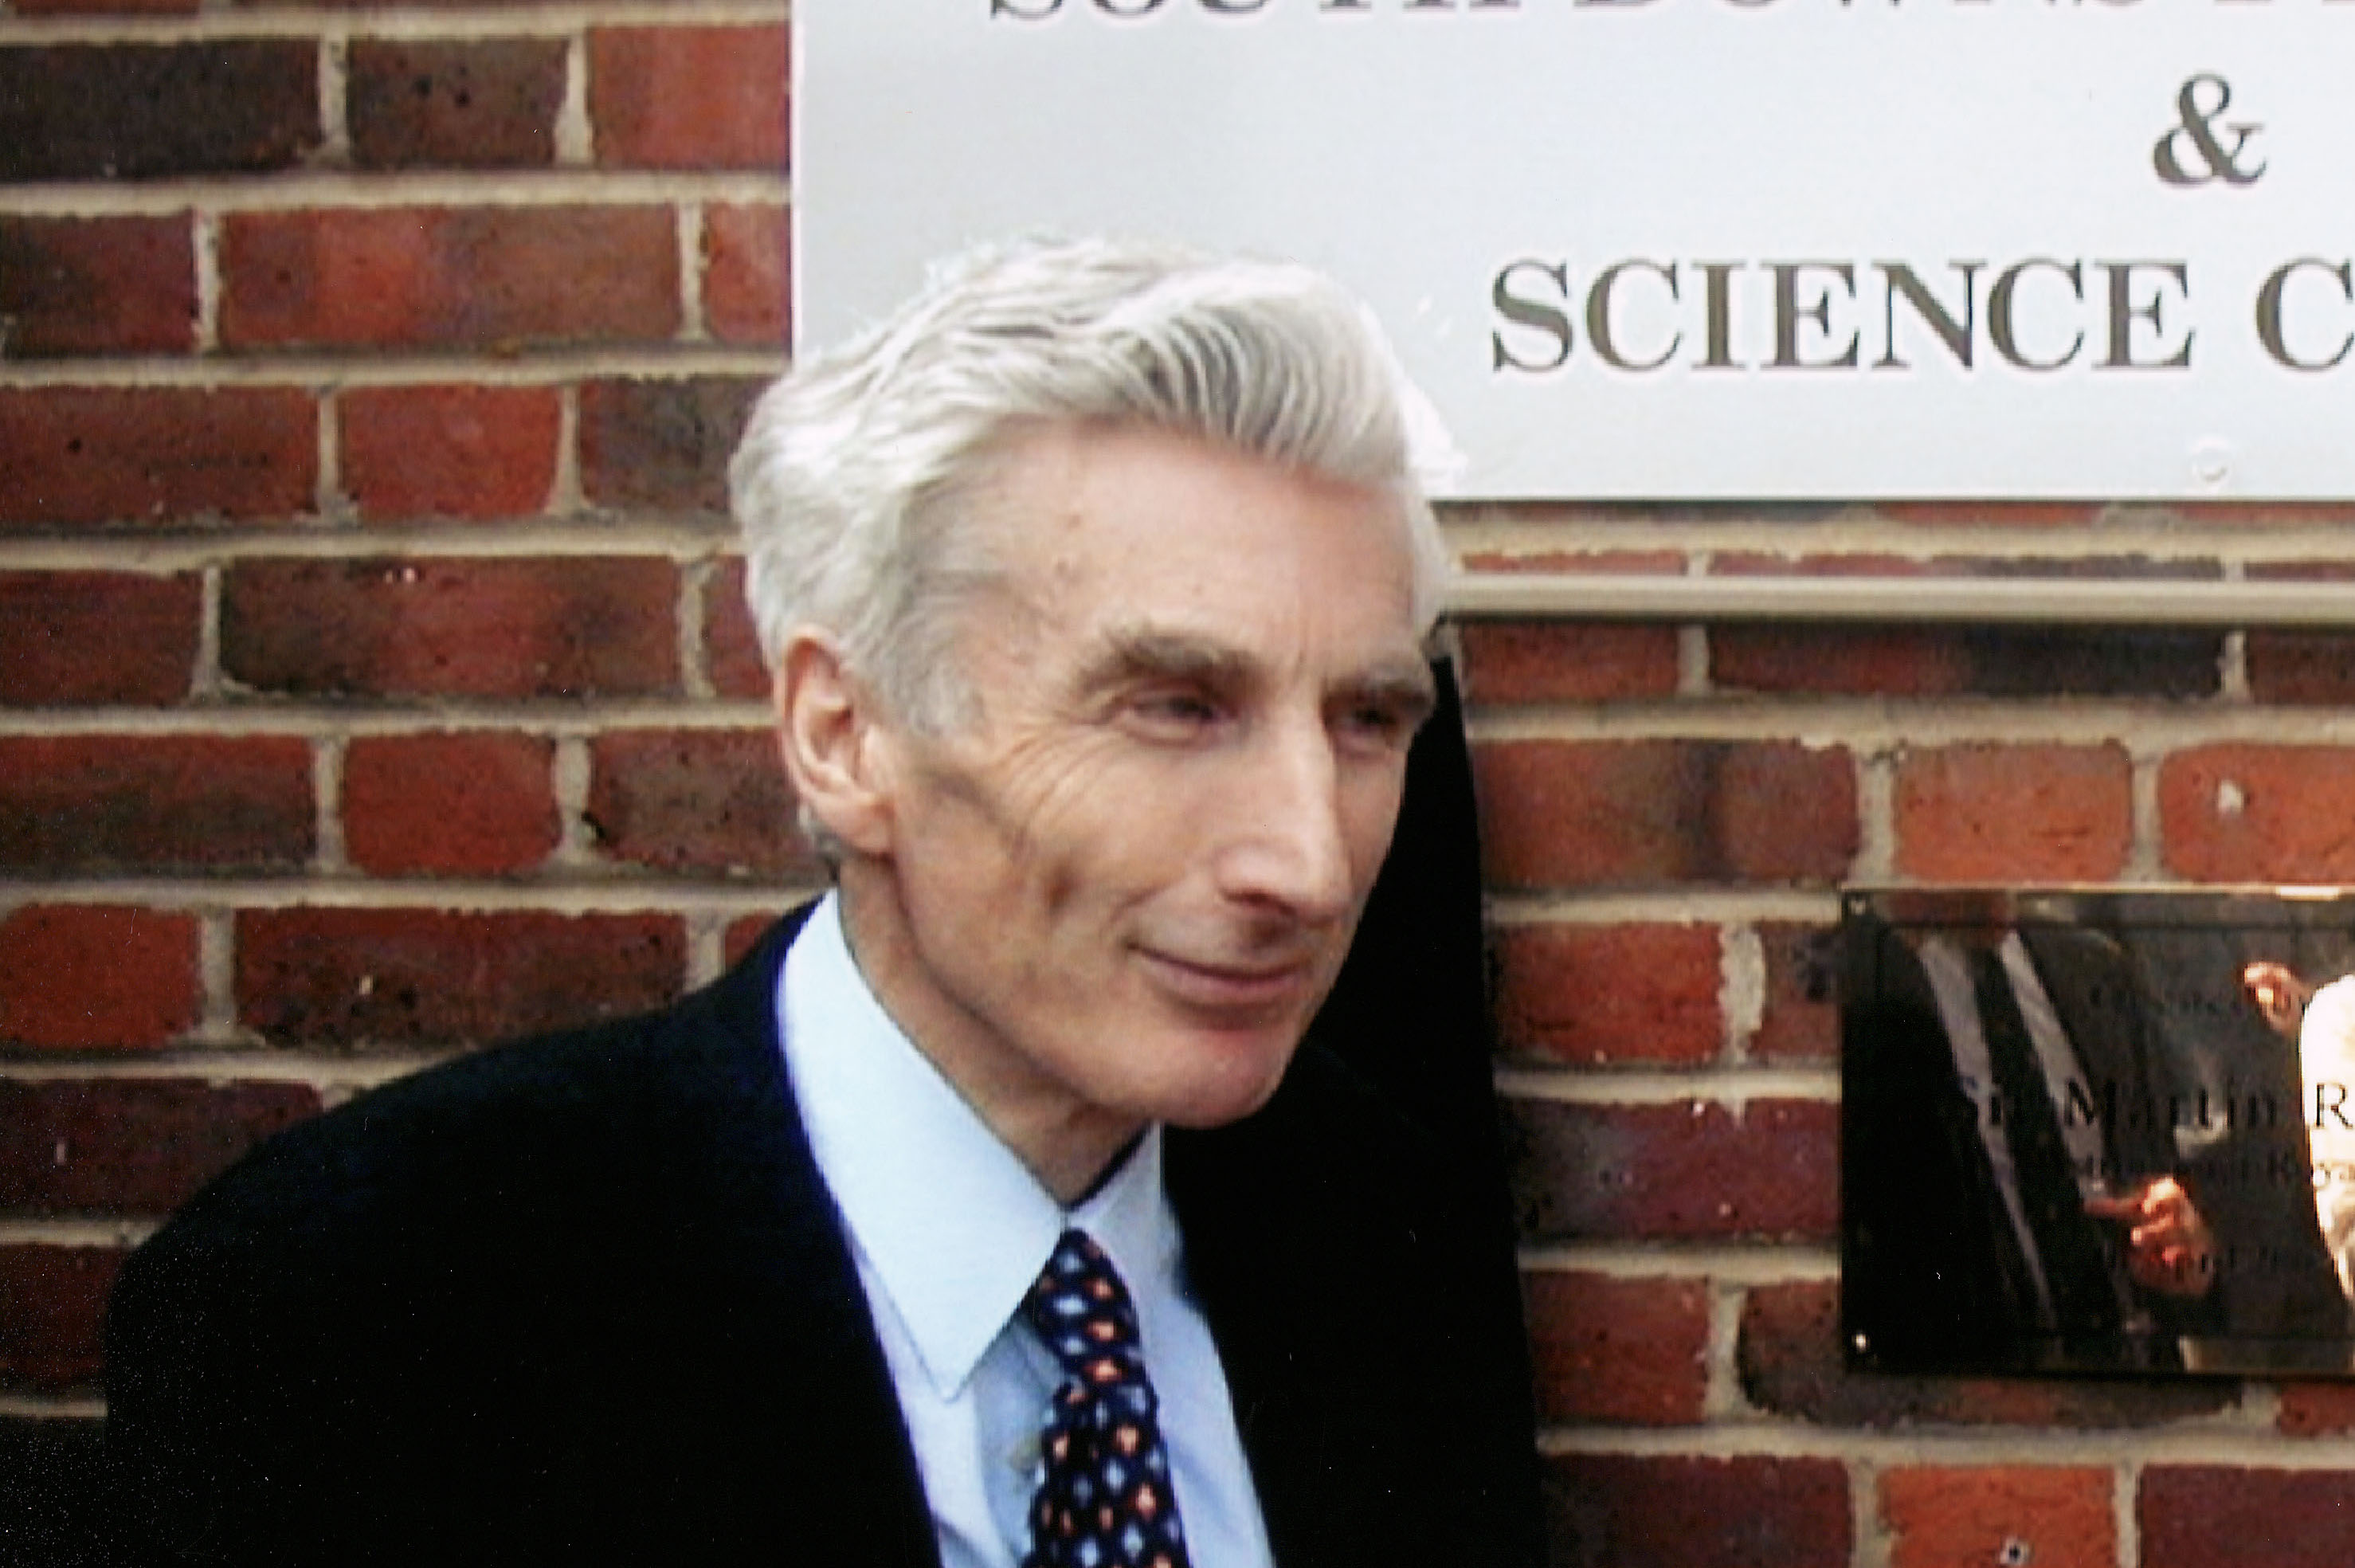 Astronomer Martin Rees is currently working on a book on the limits of science and what we still don't know